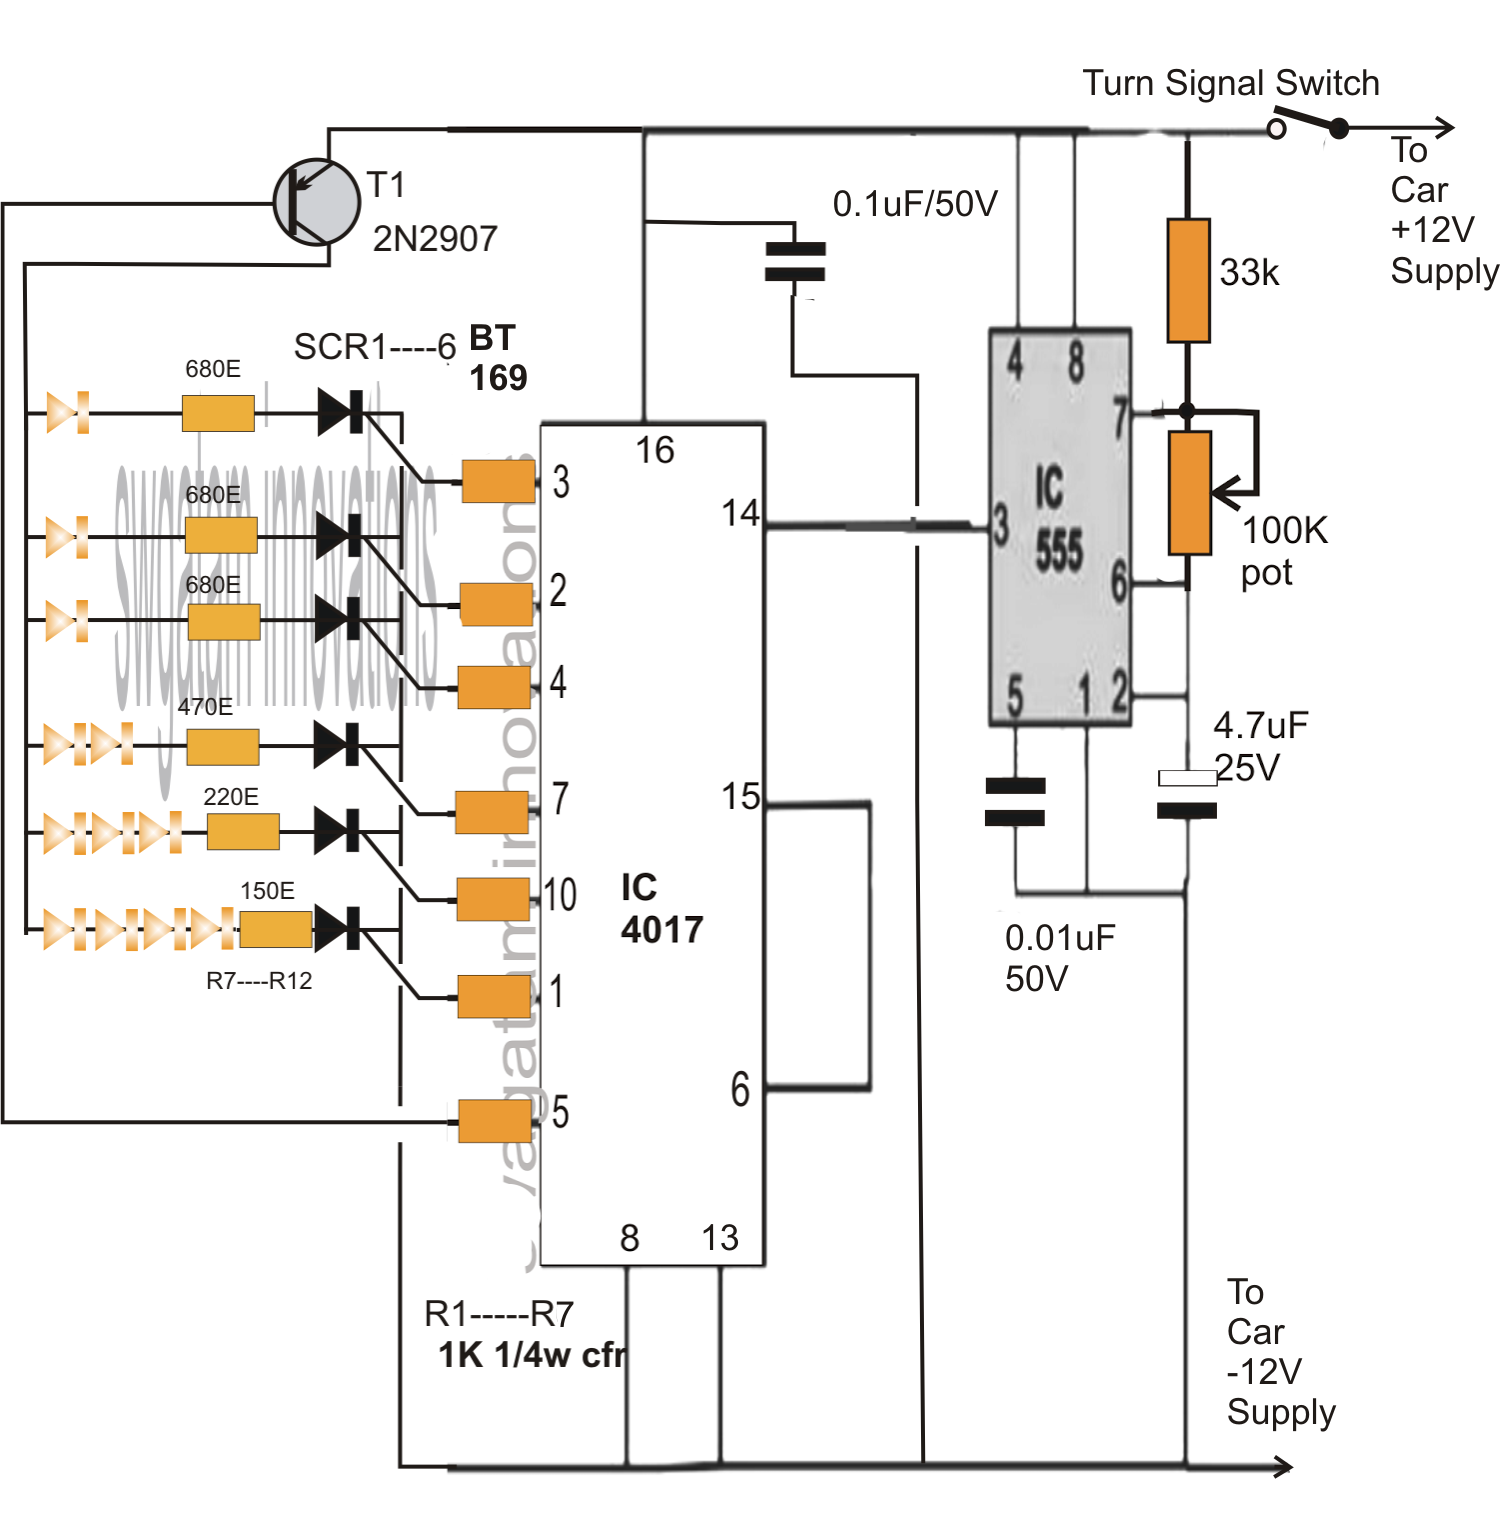 wiring diagram for led indicator light with Sequential Bar Graph Turn Light on T14521255 Flasher located 2005 kia sprecta likewise Automatic Lawn Light With Ldr in addition 380976449704499030 in addition 2po8u Flasher Switch Located 2005 Ford Expedit moreover What Is The Function Of R1 In This Relay Driver Circuit.